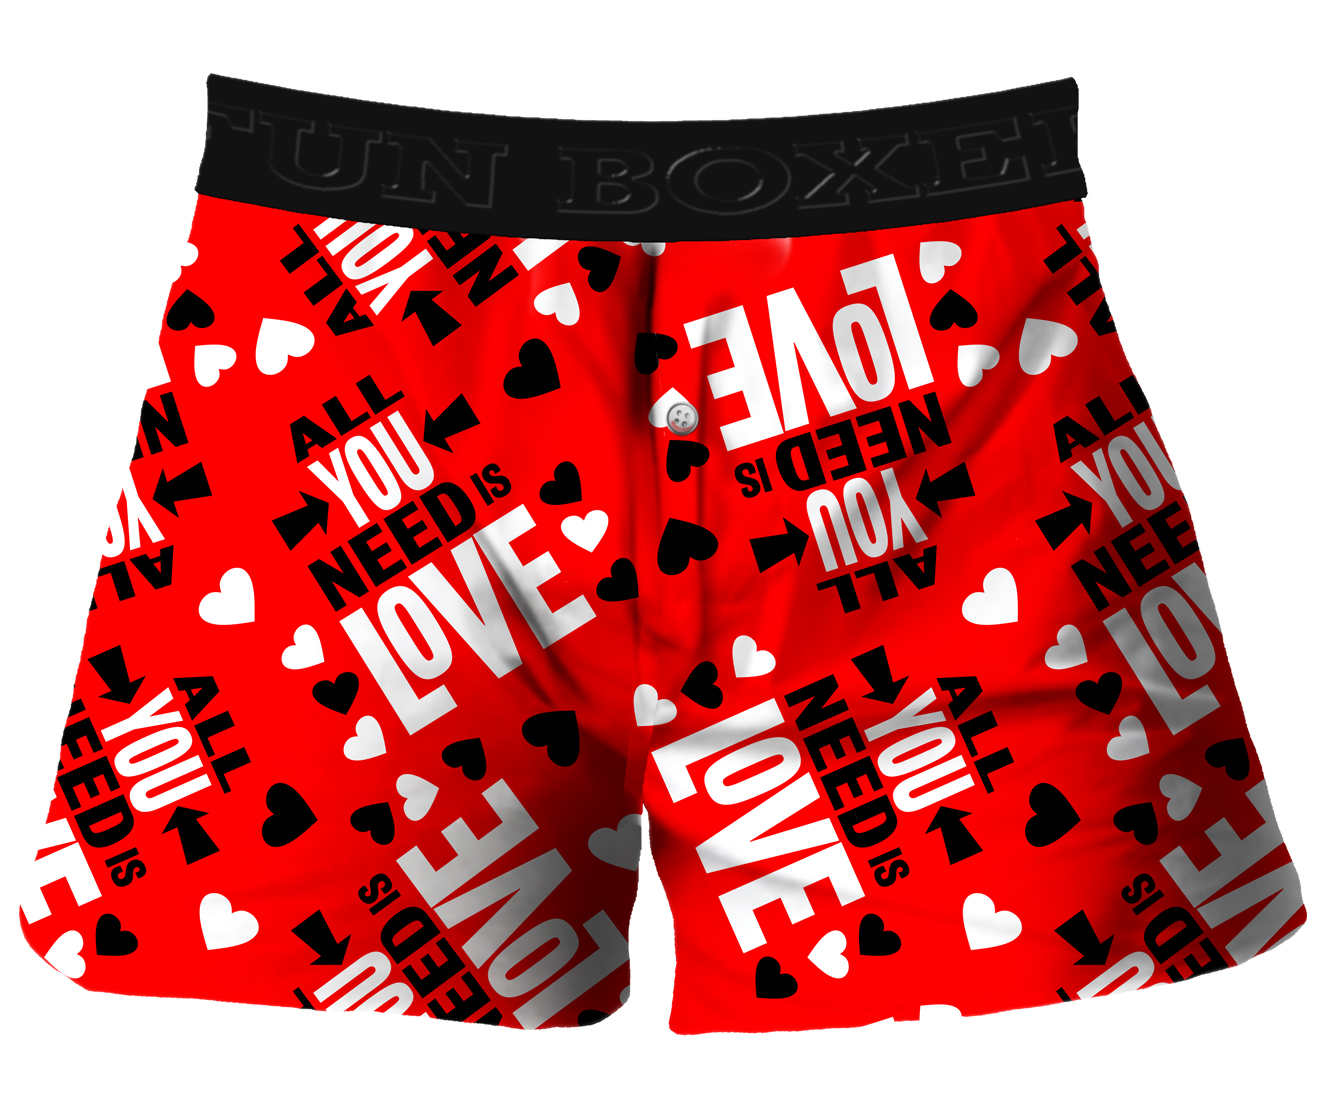 Brand: Fun Boxers. Showing 40 of results that match your query. Search Product Result. Product - Santa Pants Boxer Shorts for Men. Product Image. Price $ Product Title. Santa Pants Boxer Shorts for Men. See Details. Product - Hot Sauce Boxer Shorts. Product Image. Price $ .